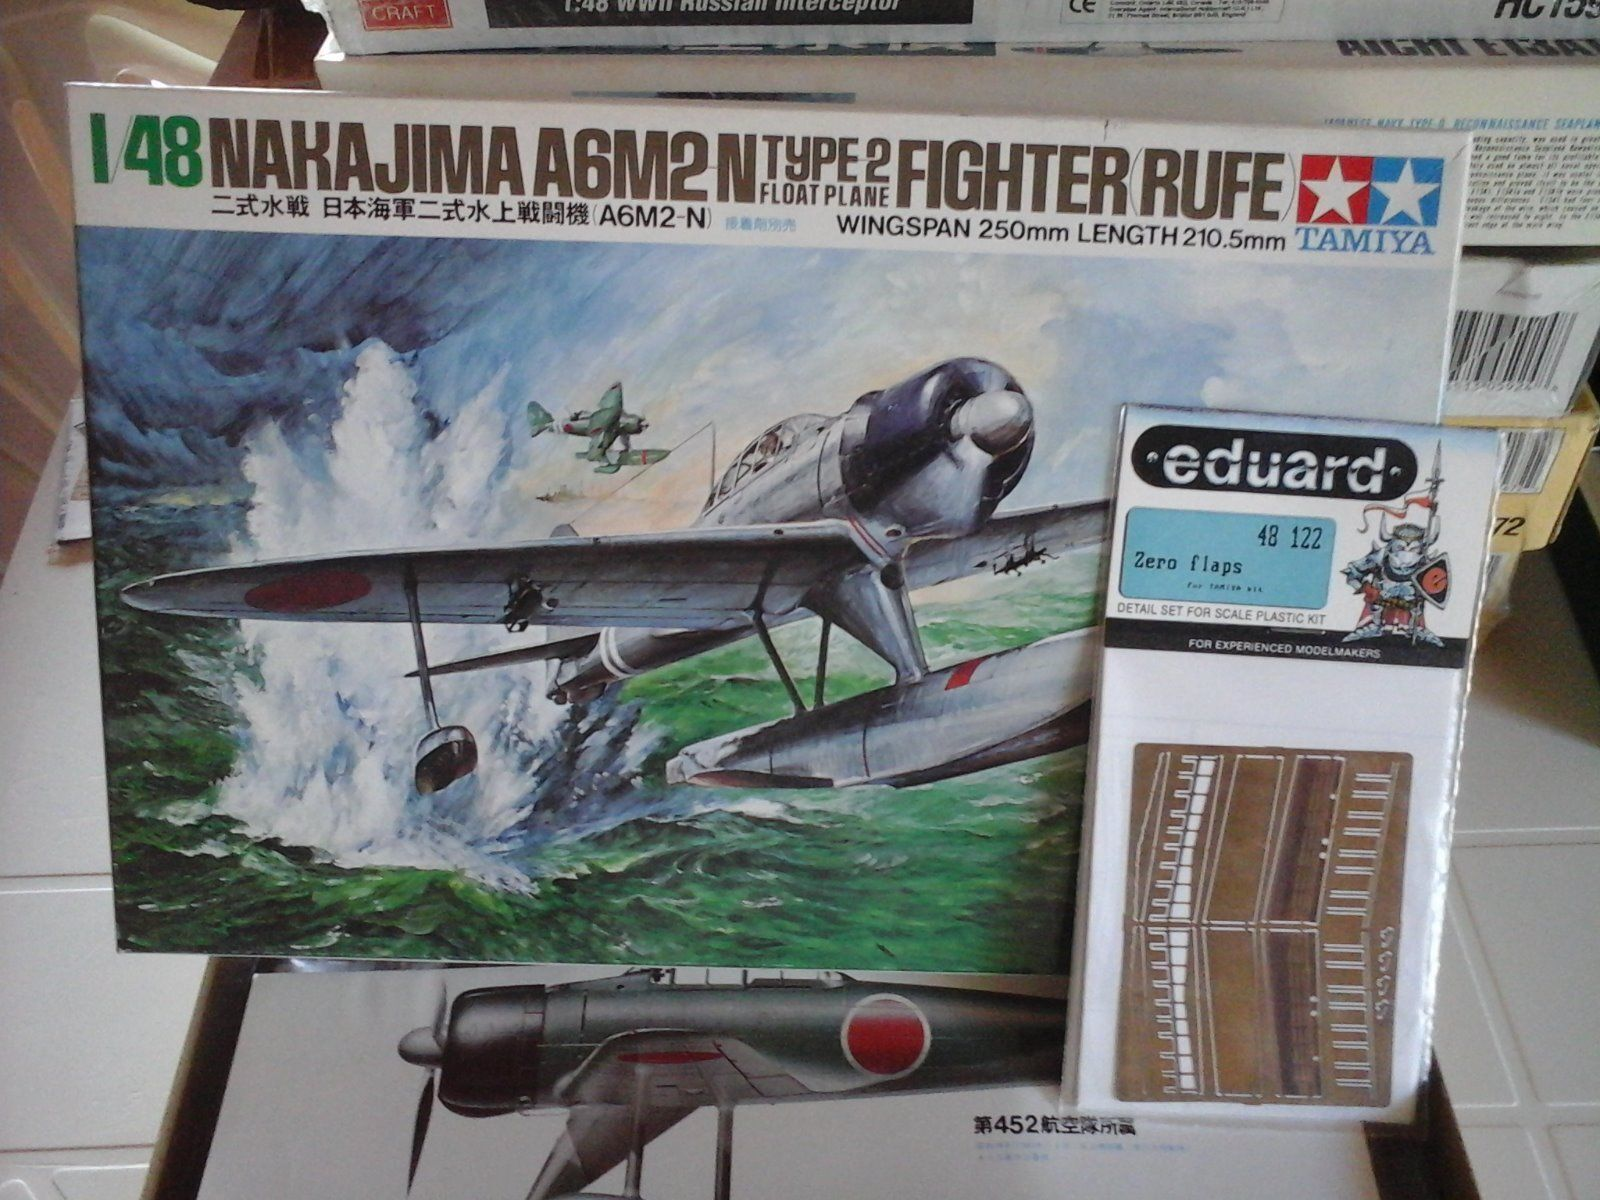 negozio online outlet NAKAJIMA A6M2N TYPE 2 FIGHTER FIGHTER FIGHTER  RUFE  1 48 SCALE TAMIYA modello+PcalienteOETCHED FLAPS  vendite online